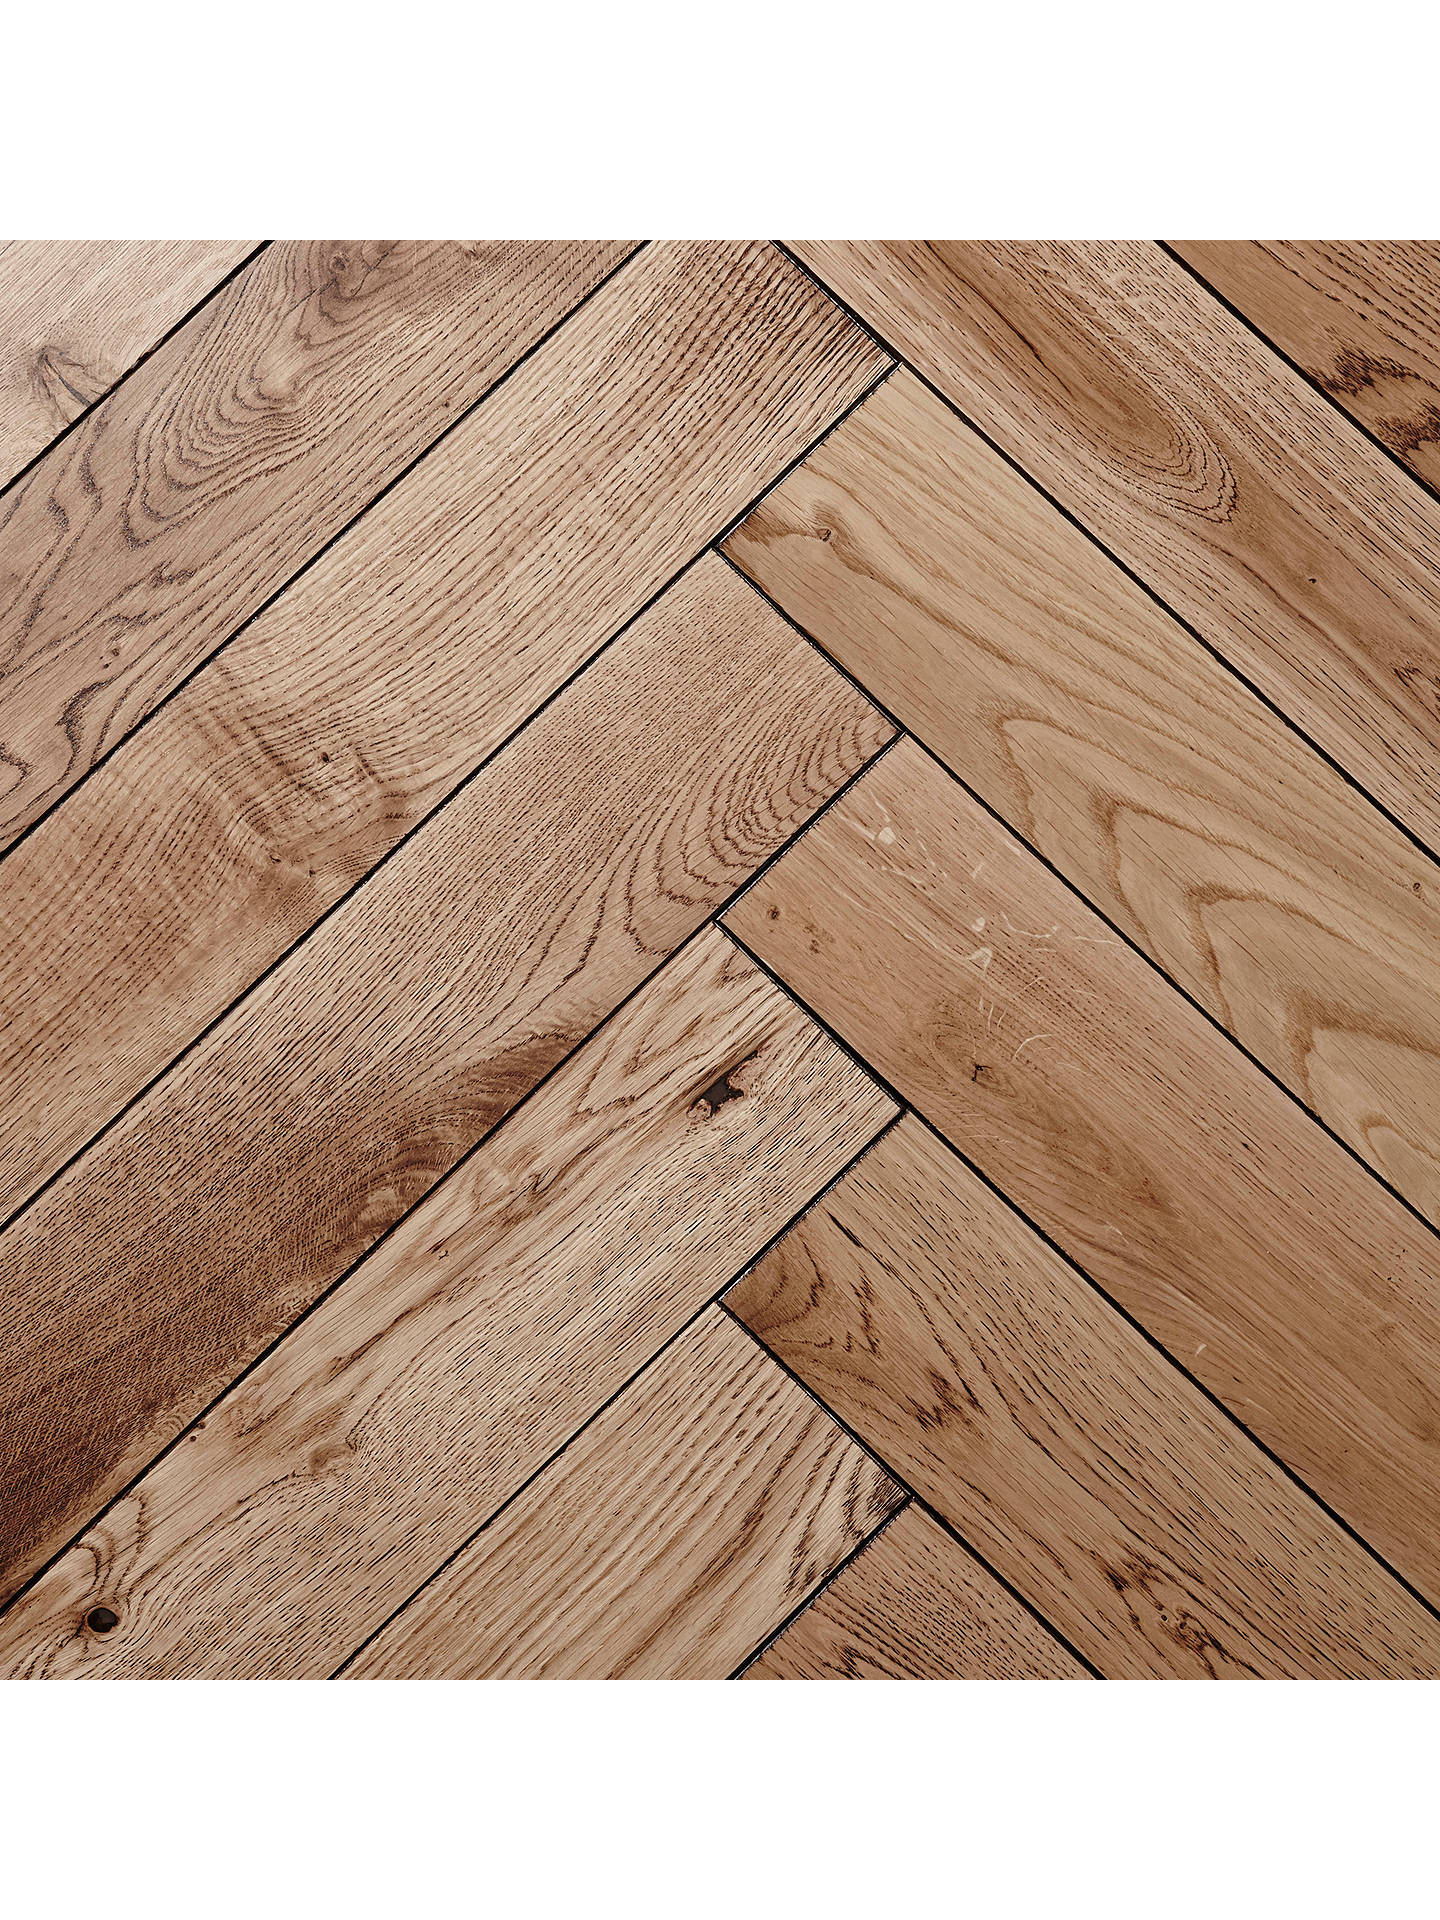 BuyTed Todd Cleeve Hill Engineered Wood Flooring, Langley Online at johnlewis.com